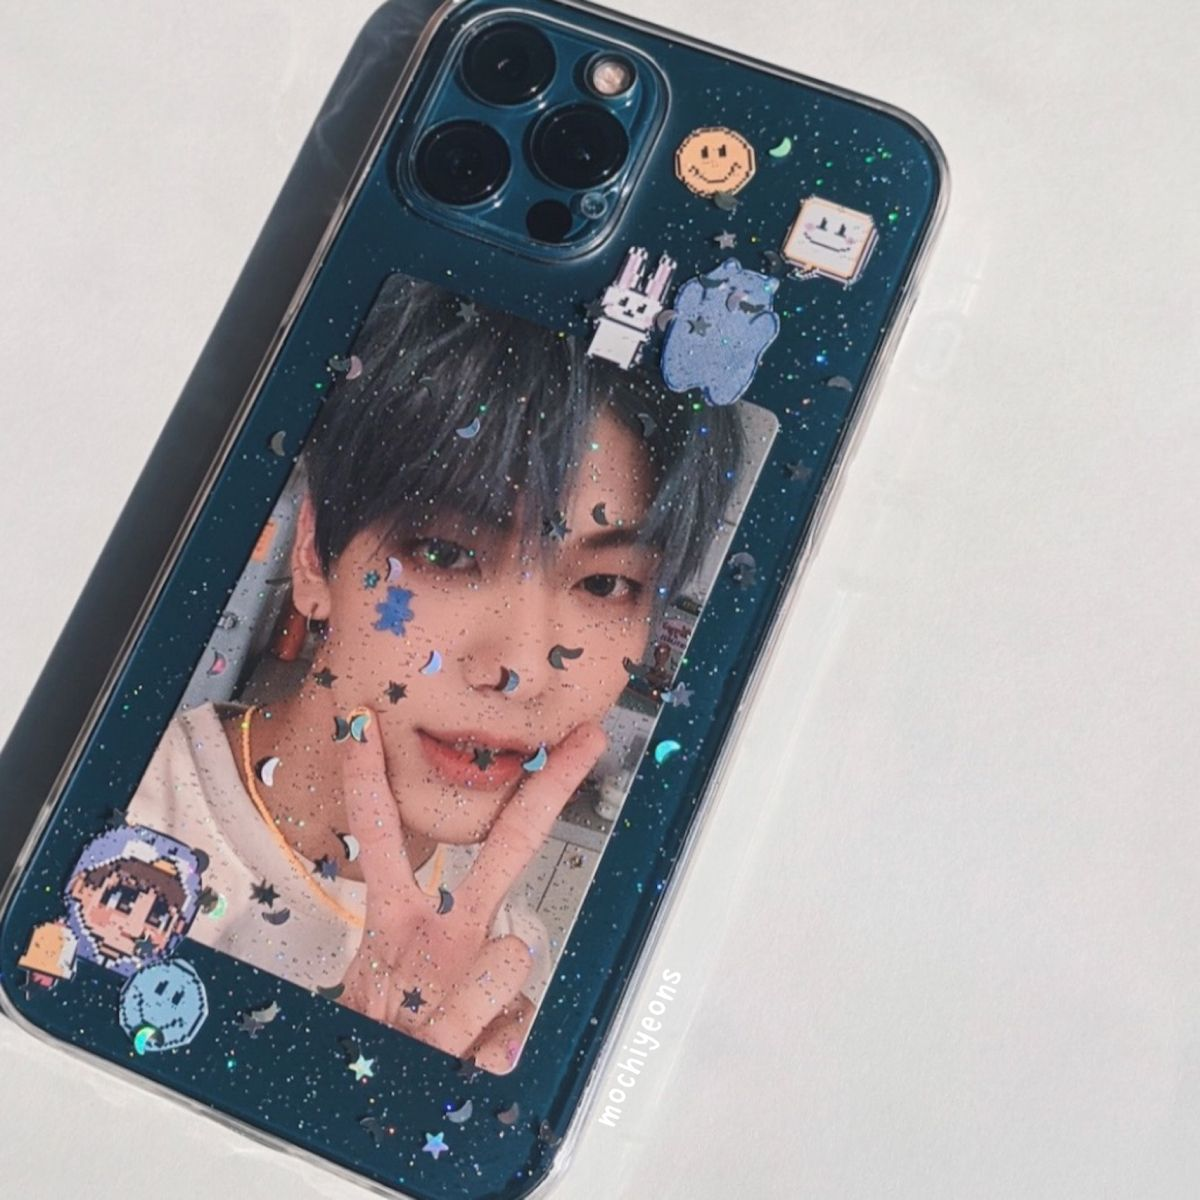 Kpop TXT Soobin Blue Hour Photocard Phone Case Aes